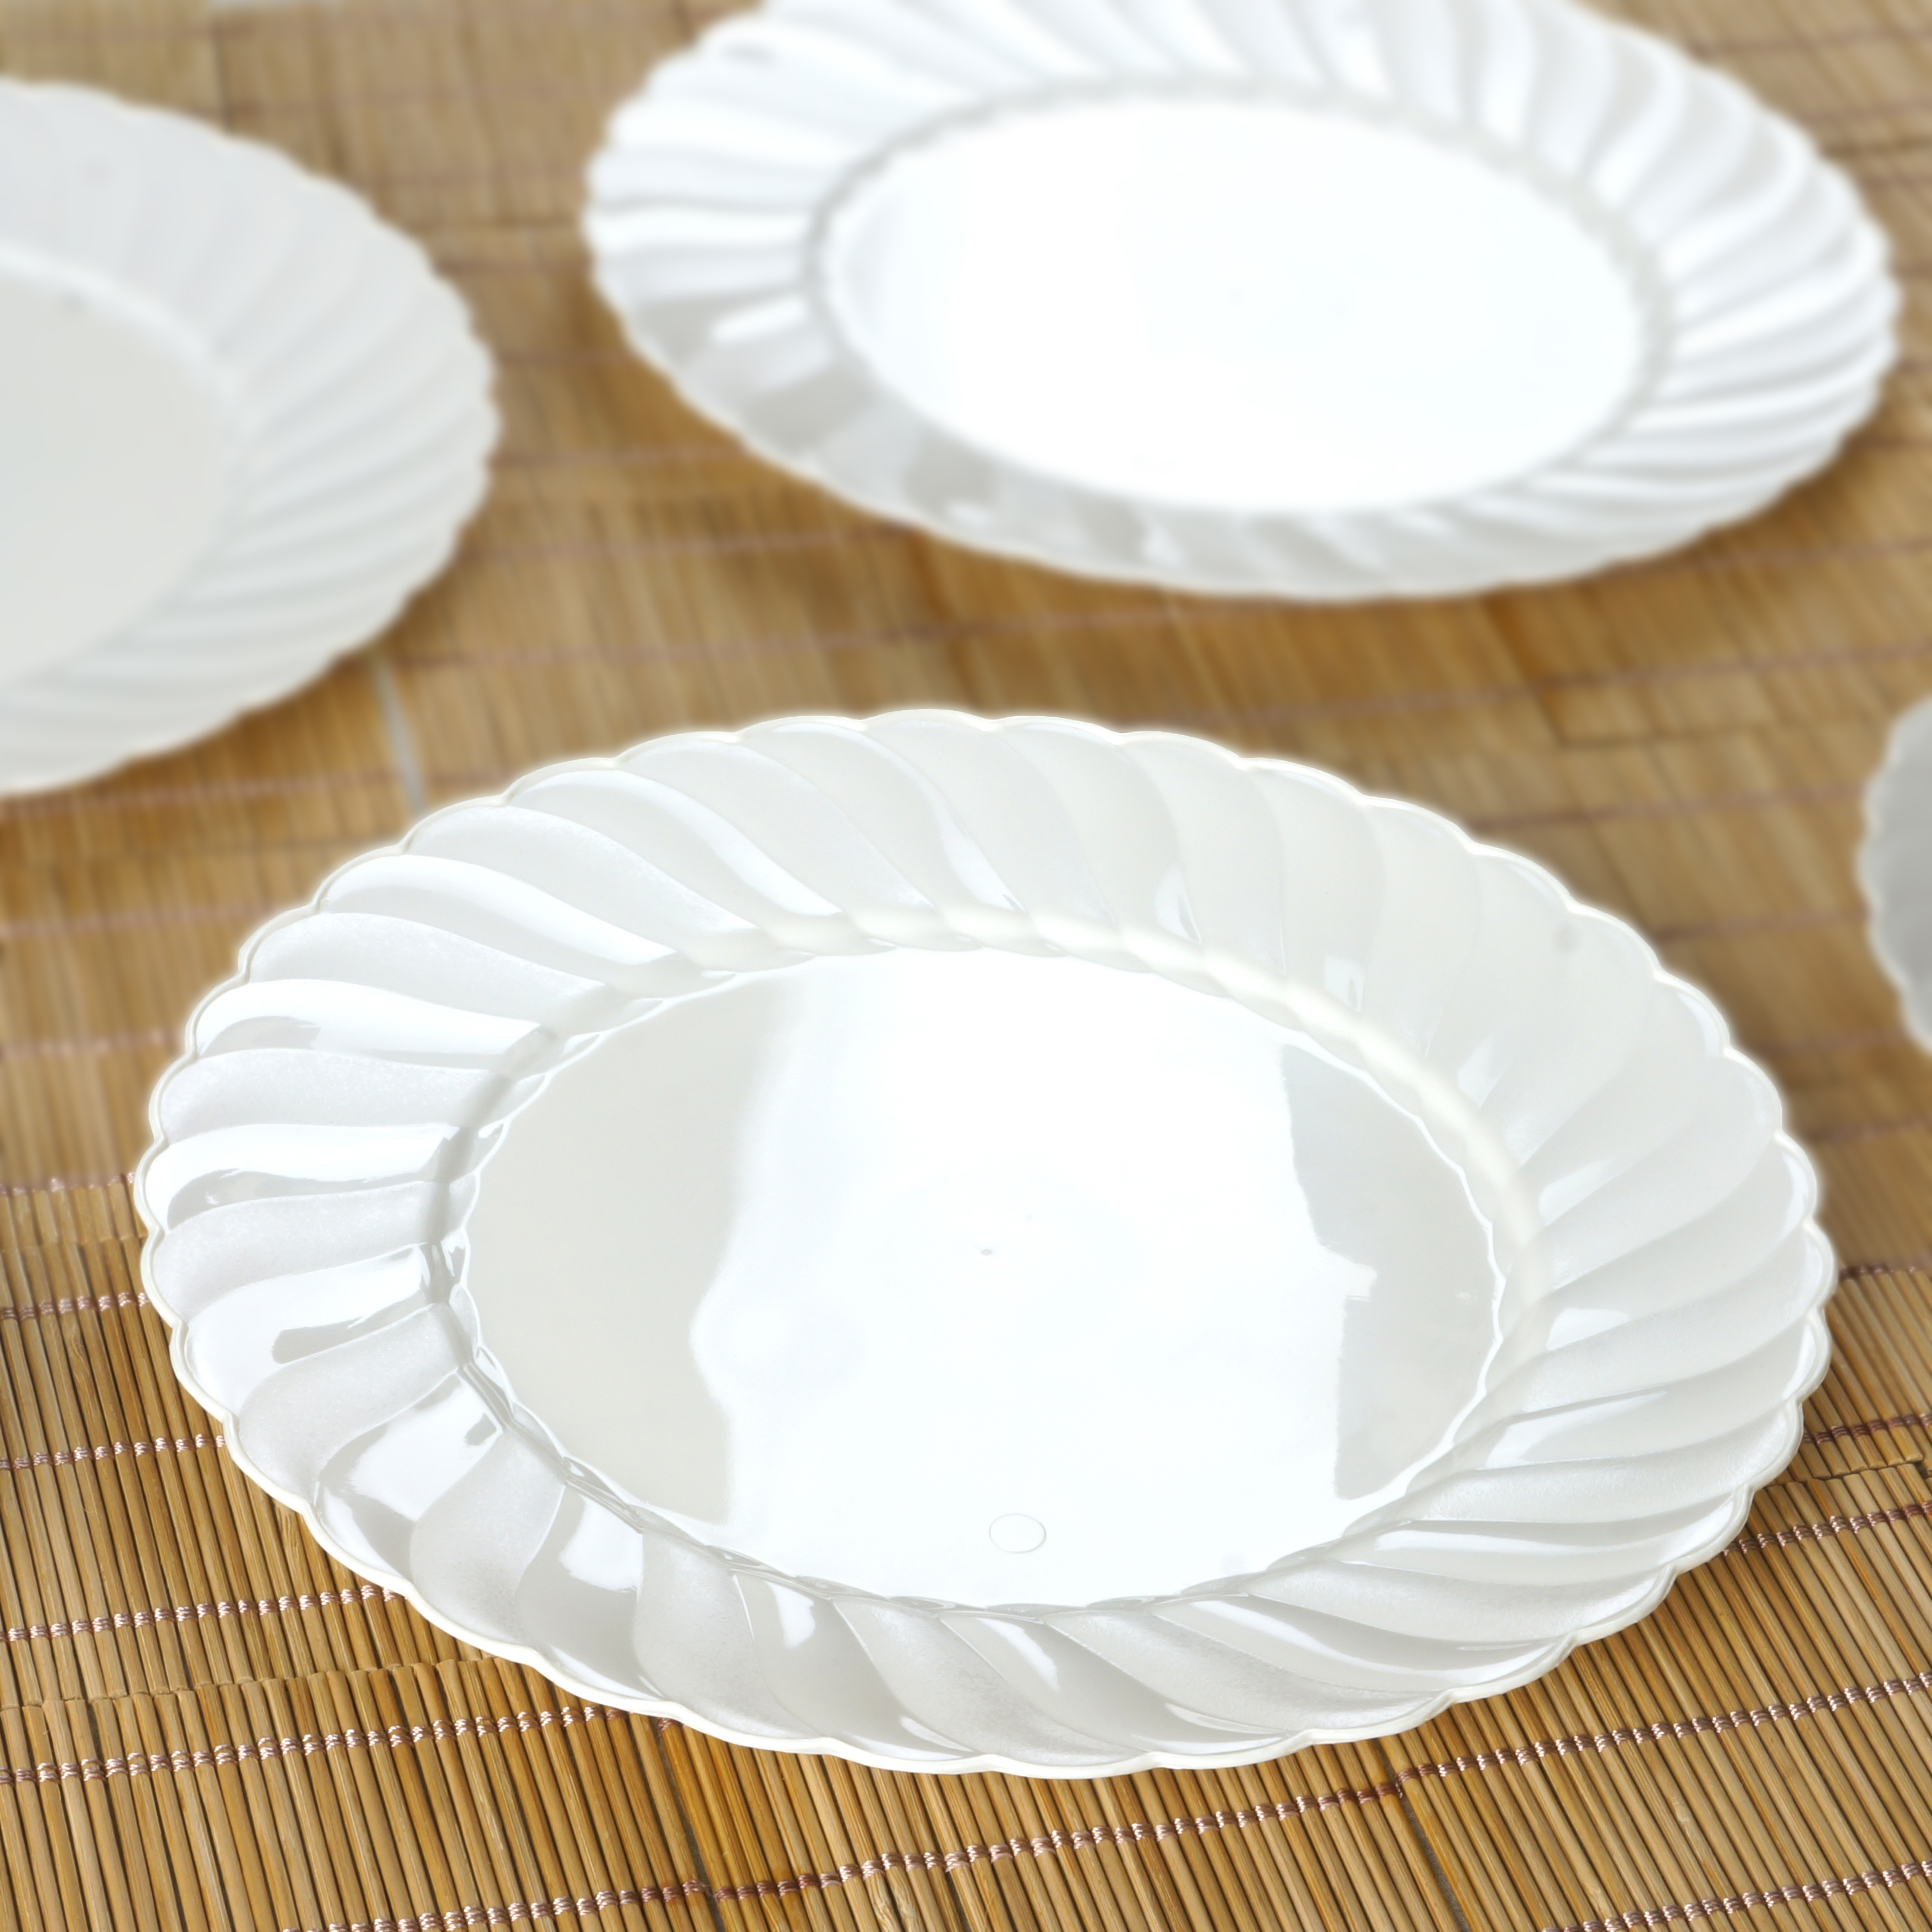 Plastic FLAIRED ROUND 10 DINNER PLATES Disposable TABLEWARE Wedding Cat